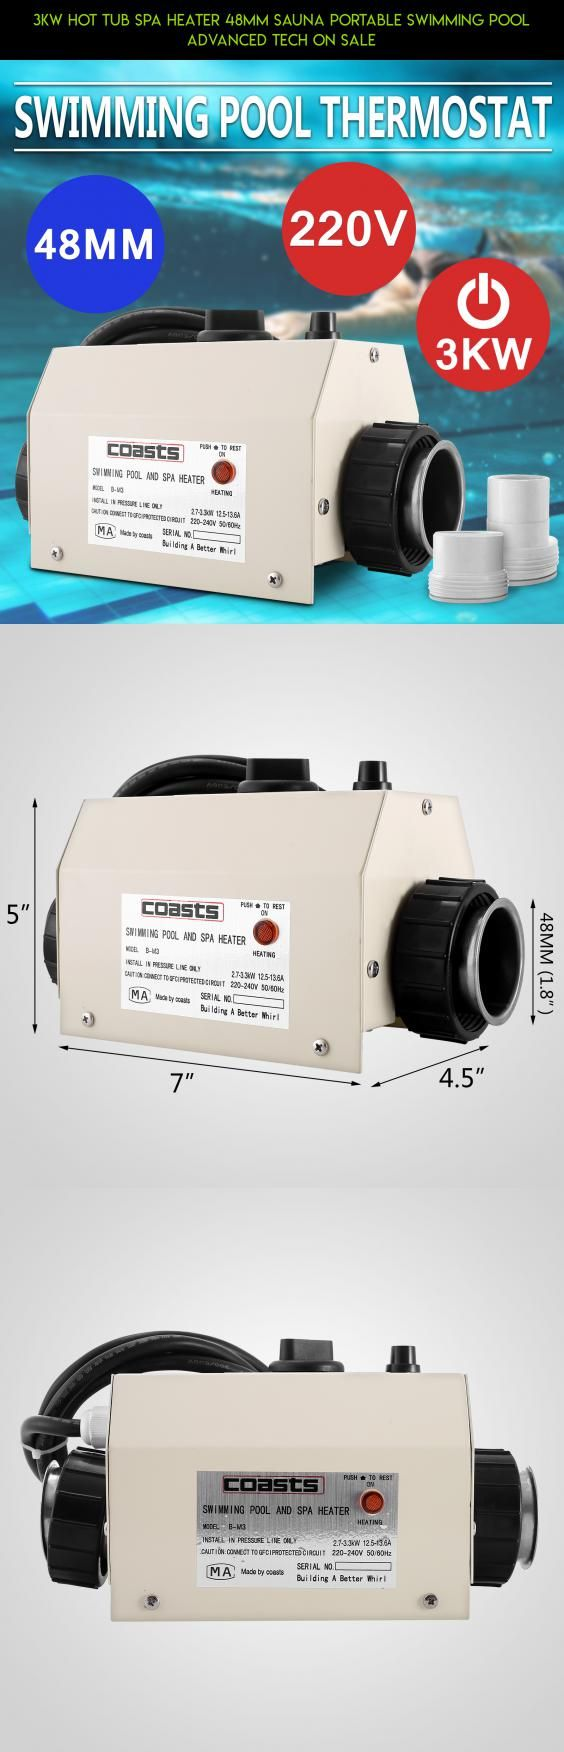 3KW HOT TUB SPA HEATER 48MM SAUNA PORTABLE SWIMMING POOL ADVANCED TECH ON SALE #tubs #camera #fpv #sale #kit #hot #parts #plans #technology #shopping #products #gadgets #on #tech #racing #drone